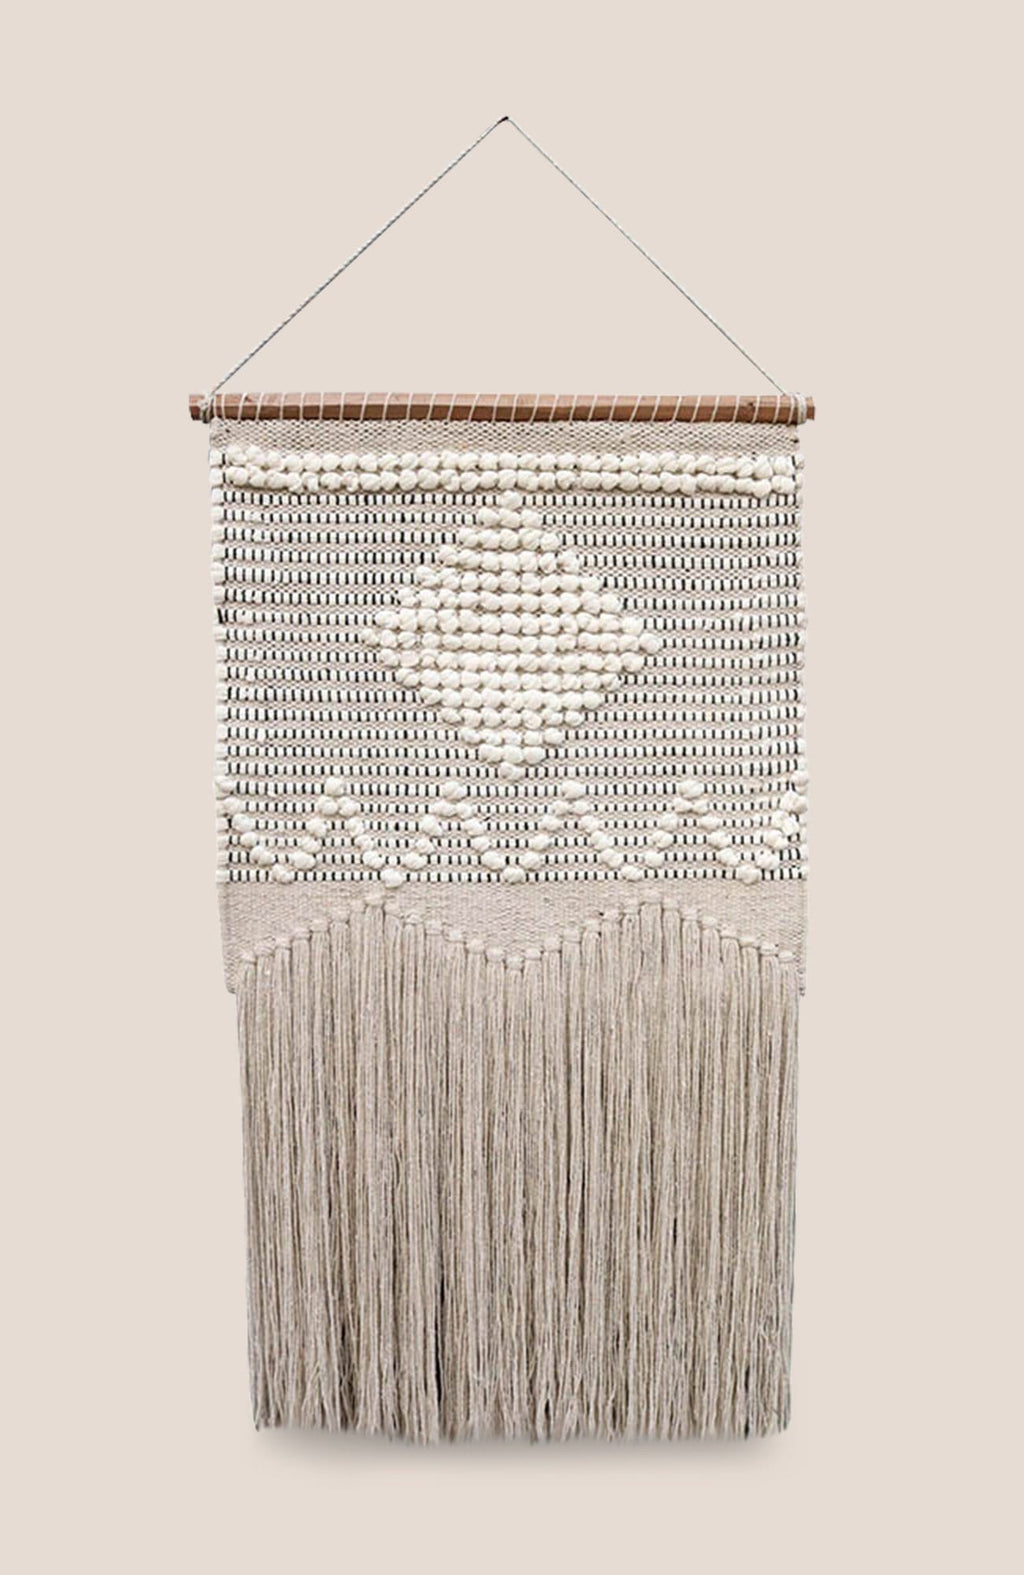 Macrame Wall Hanging Fin - Home Decor | Shop Baskets, Ceramics, Pillows, Rugs & Wall Hangs online